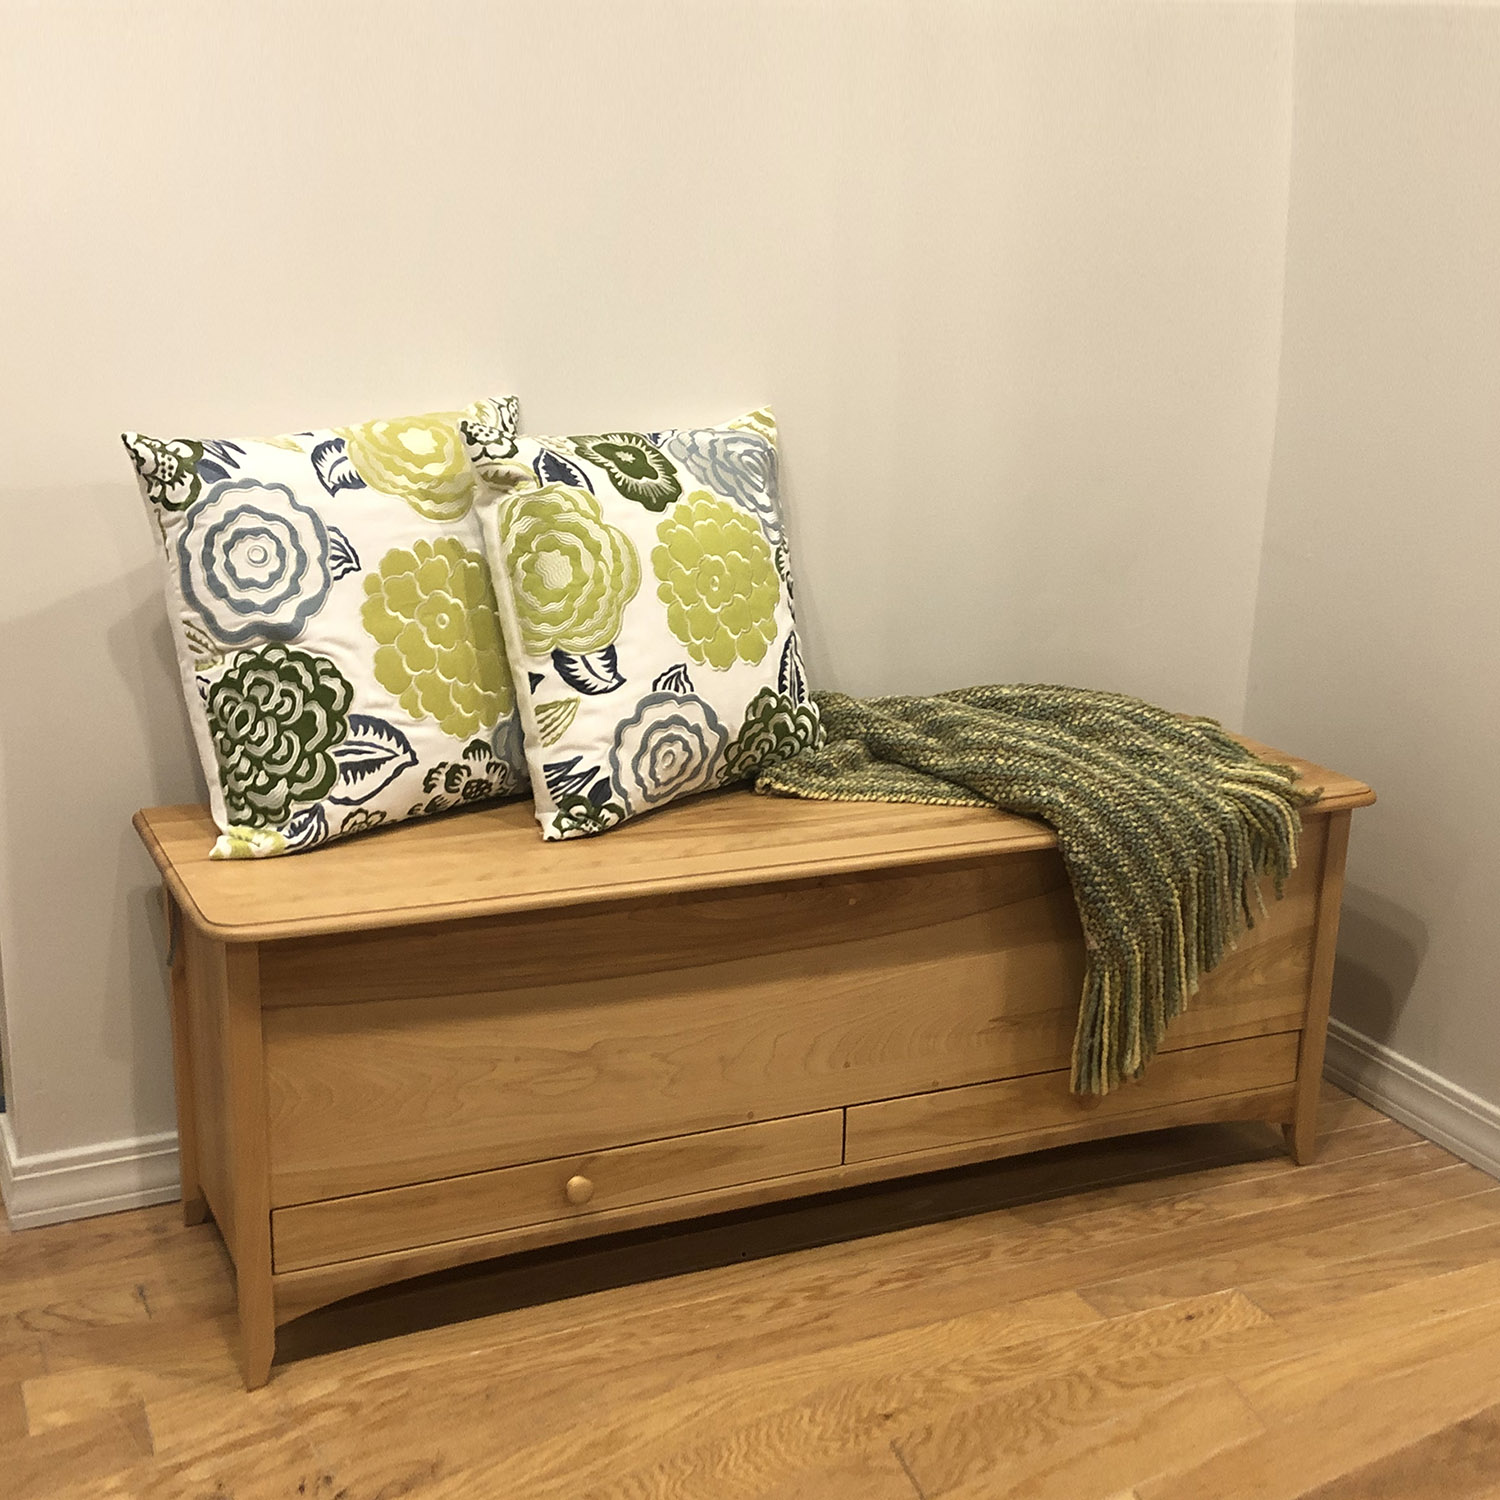 New England Blanket Chest 247368